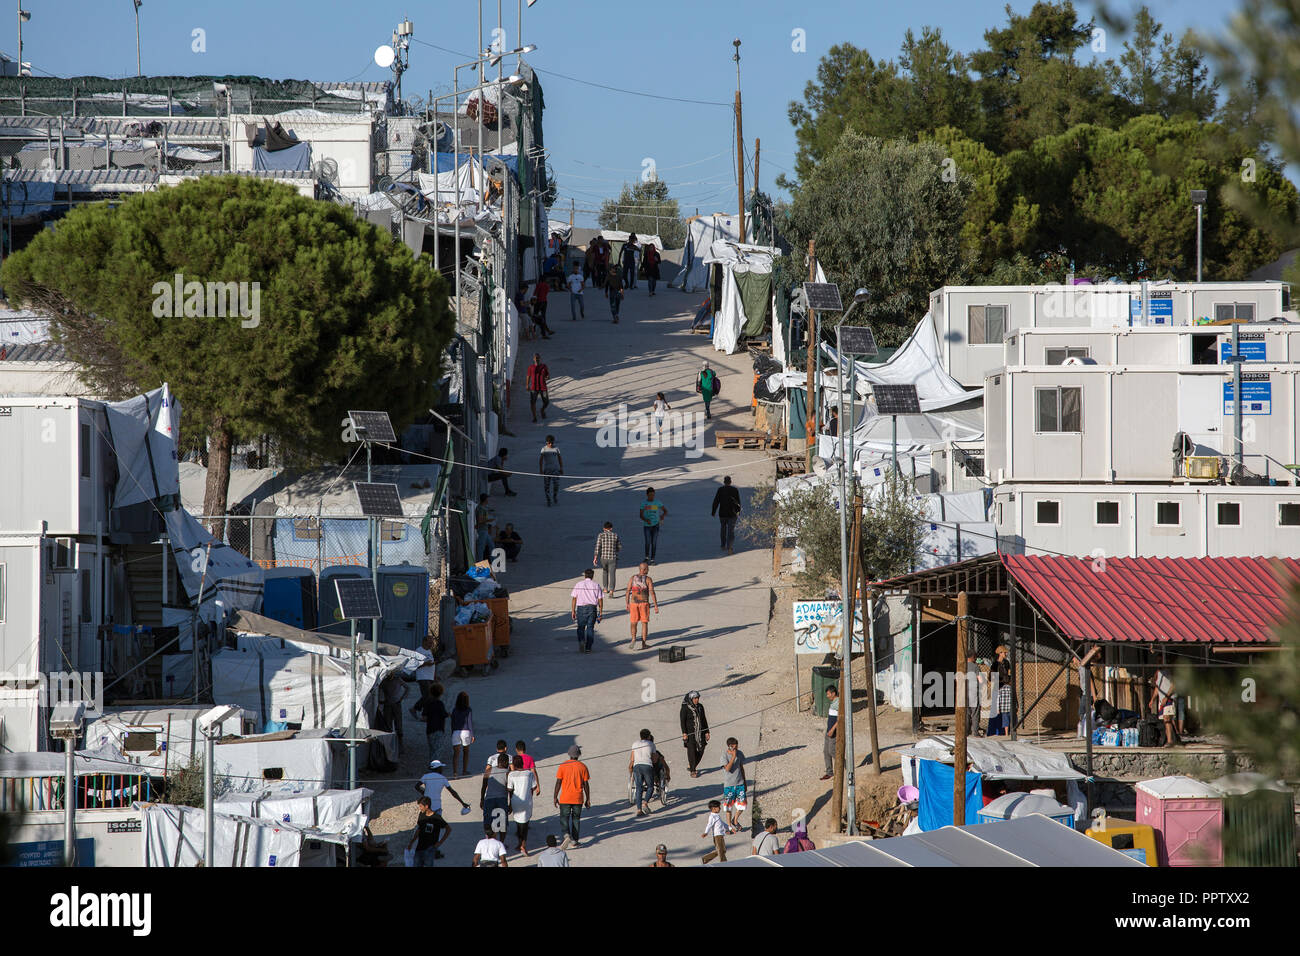 Moira, Greece. 24th Sep, 2018. Refugees walk along a path in the refugee camp Moria. (to dpa 'Moria: The camp of shame on the island of Lesbos' of 28.09.2018) Credit: Socrates Baltagiannis/dpa/Alamy Live News - Stock Image